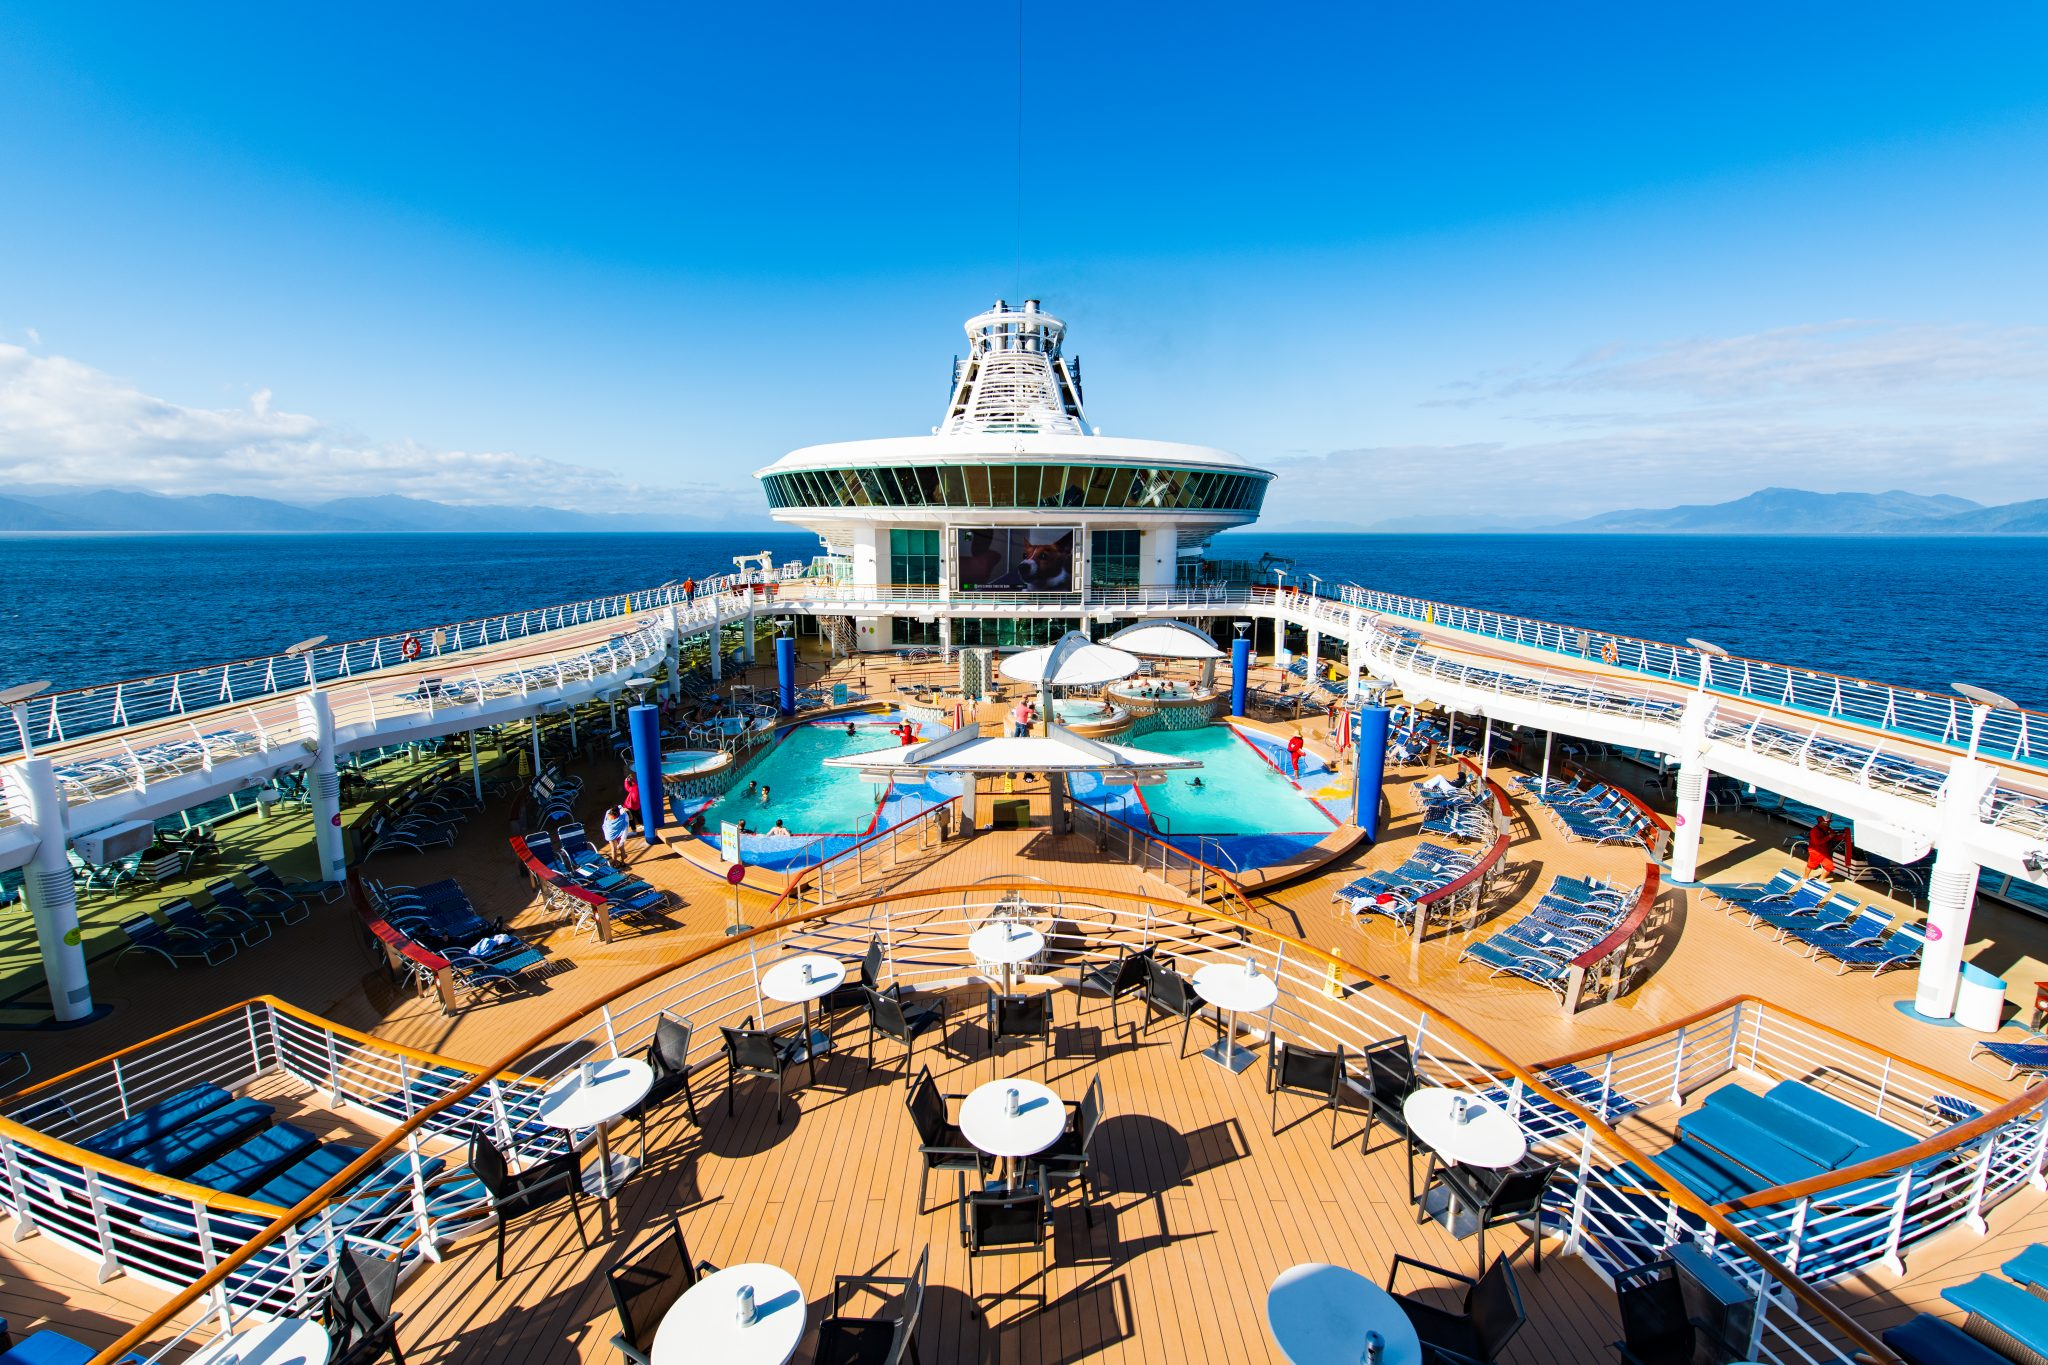 Royal Caribbean Makes Changes to Winter 2021/2022 Cruise Schedule